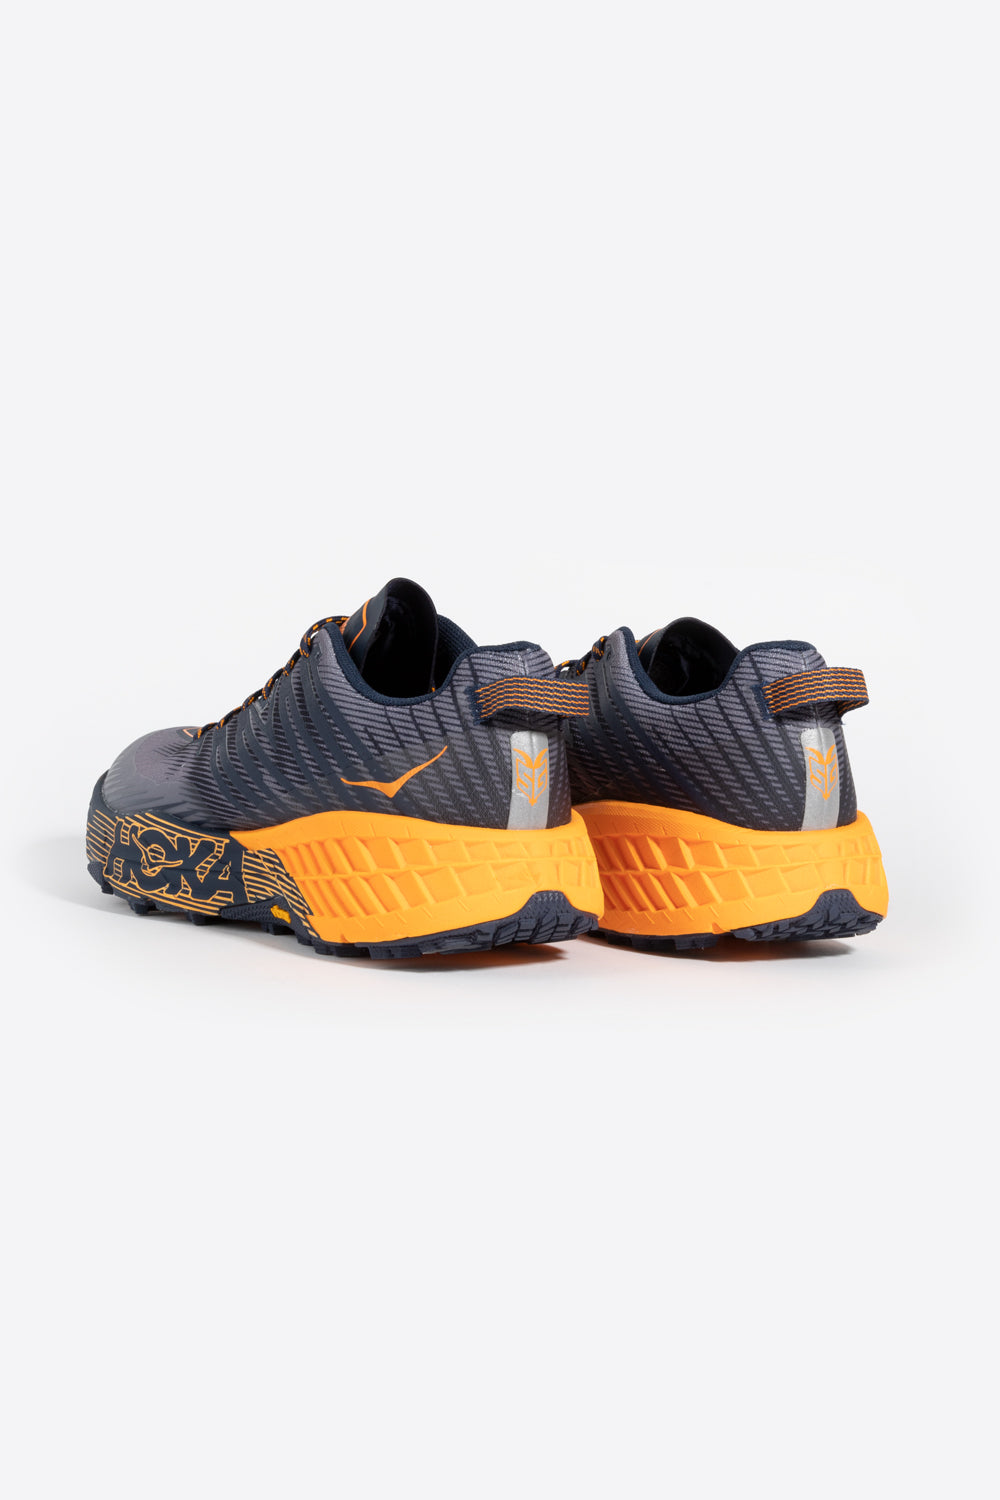 Hoka one one speedgoat 4 bright marigold black iris